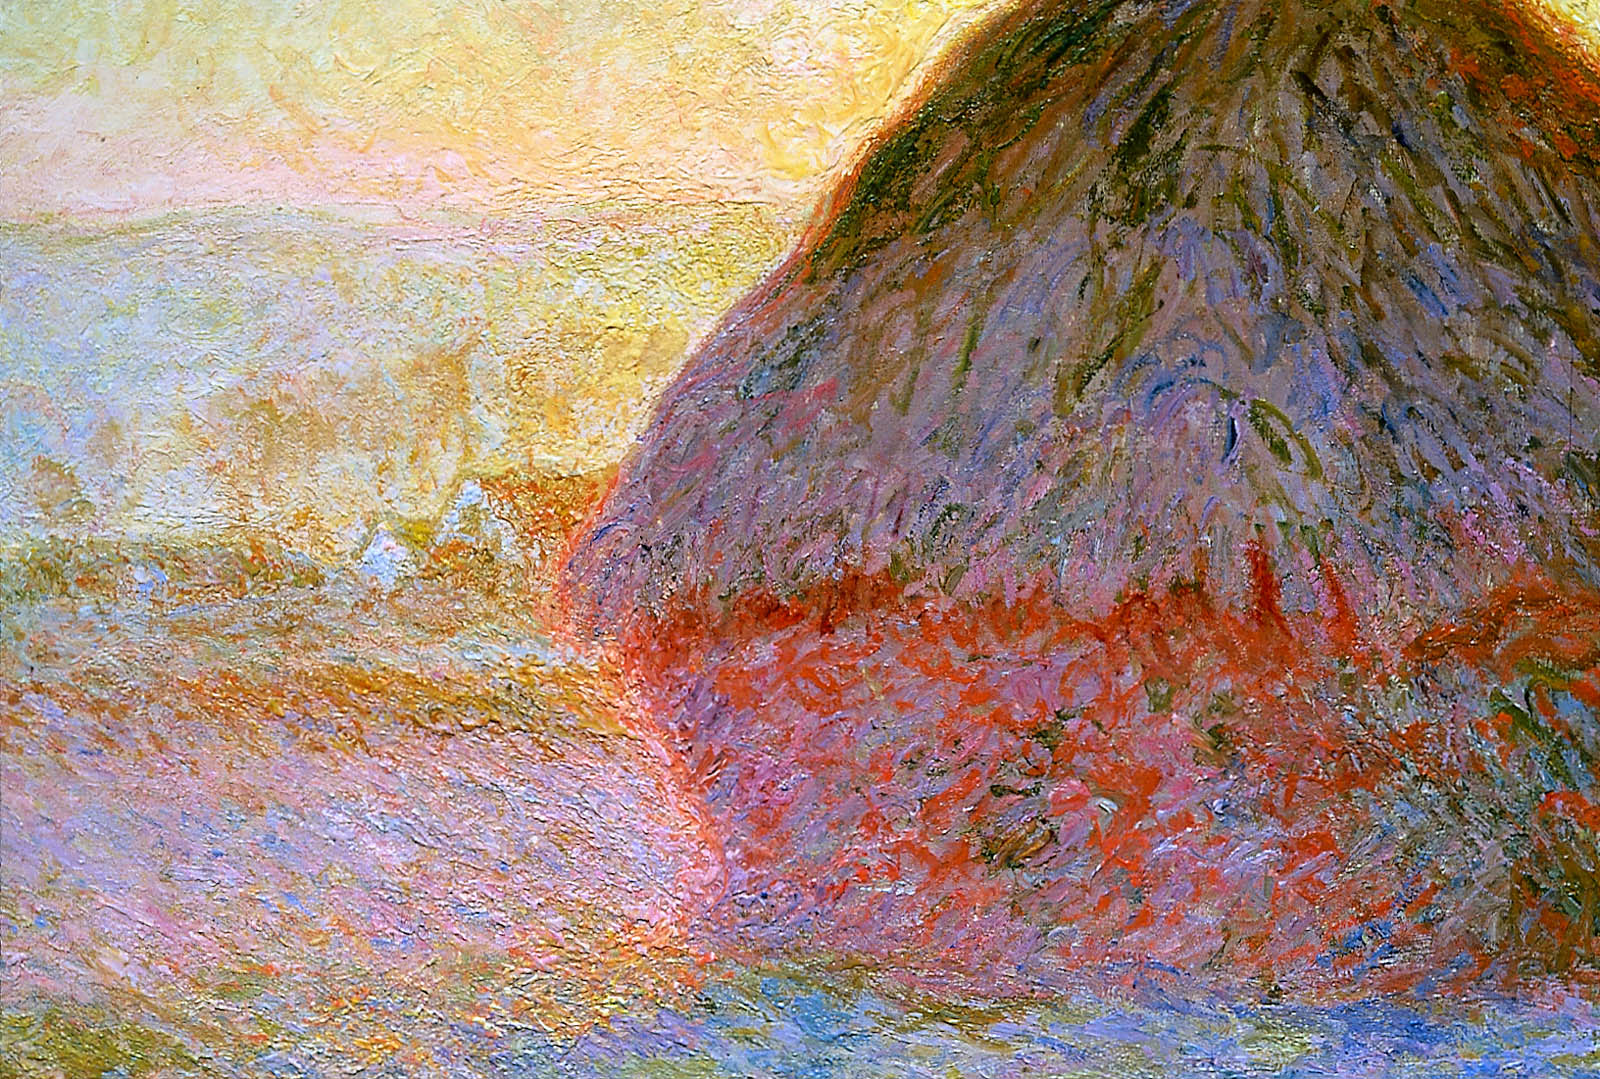 an analysis of grainstack sunset by claude monet The grainstack at sunset 1891 painting originally painted by claude oscar monet can be yours today all reproductions are hand painted by talented artists free shipping the grainstack at sunset 1891 painting originally painted.